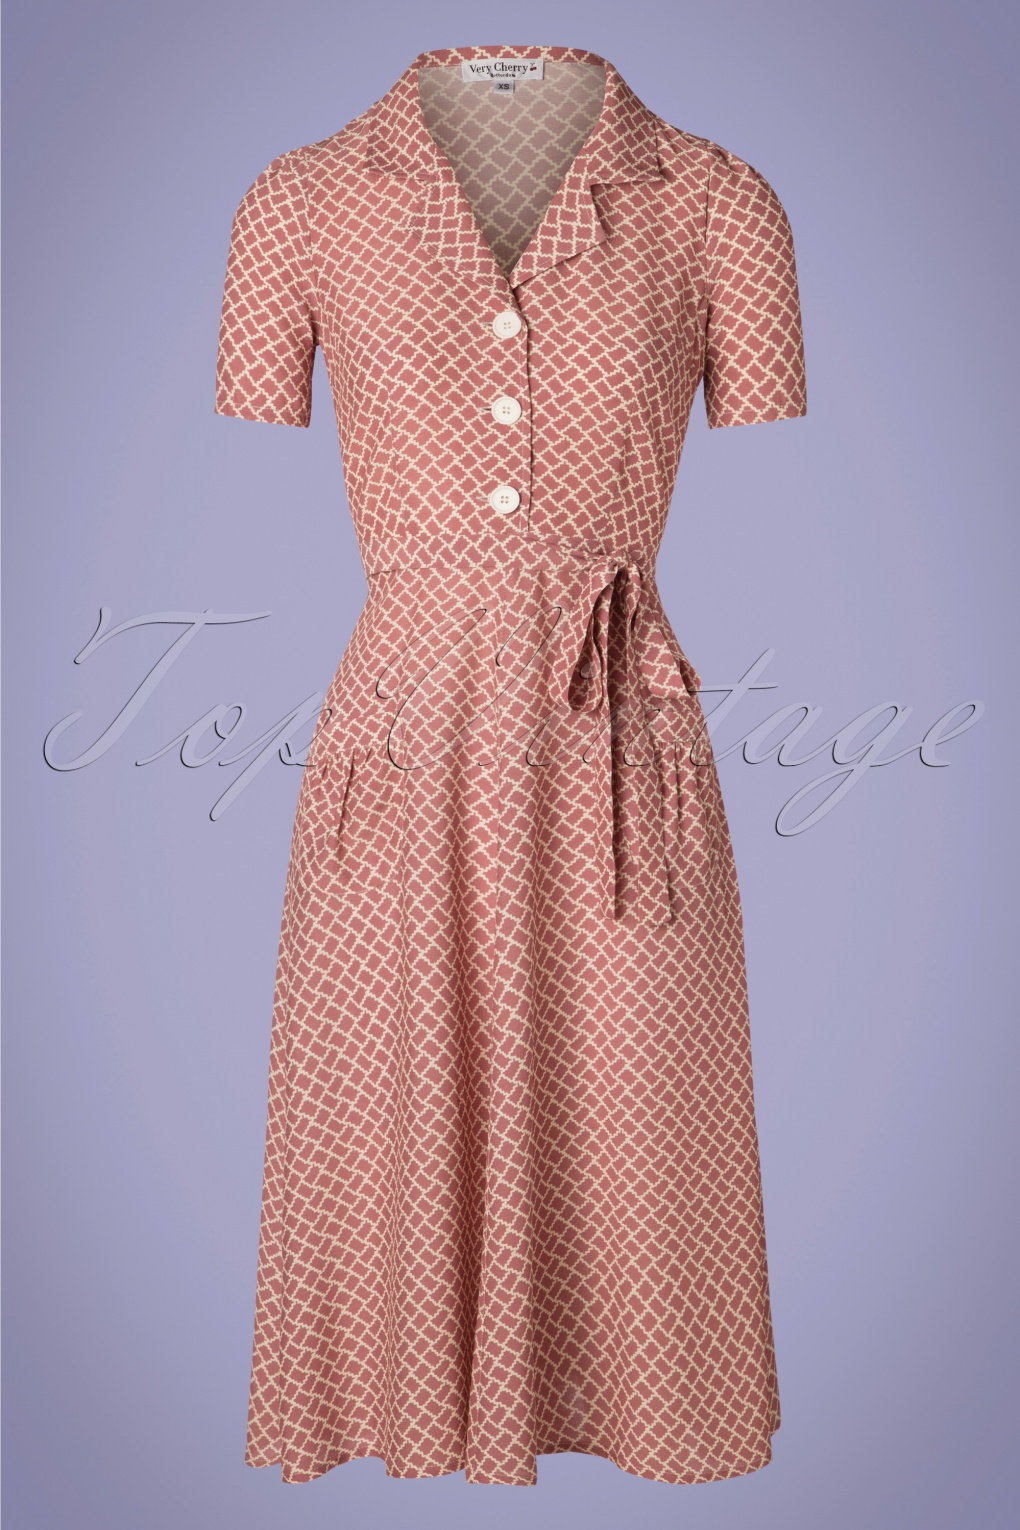 500 Vintage Style Dresses for Sale | Vintage Inspired Dresses 40s Rumba Revers Midi Dress in Dusty Pink £117.93 AT vintagedancer.com